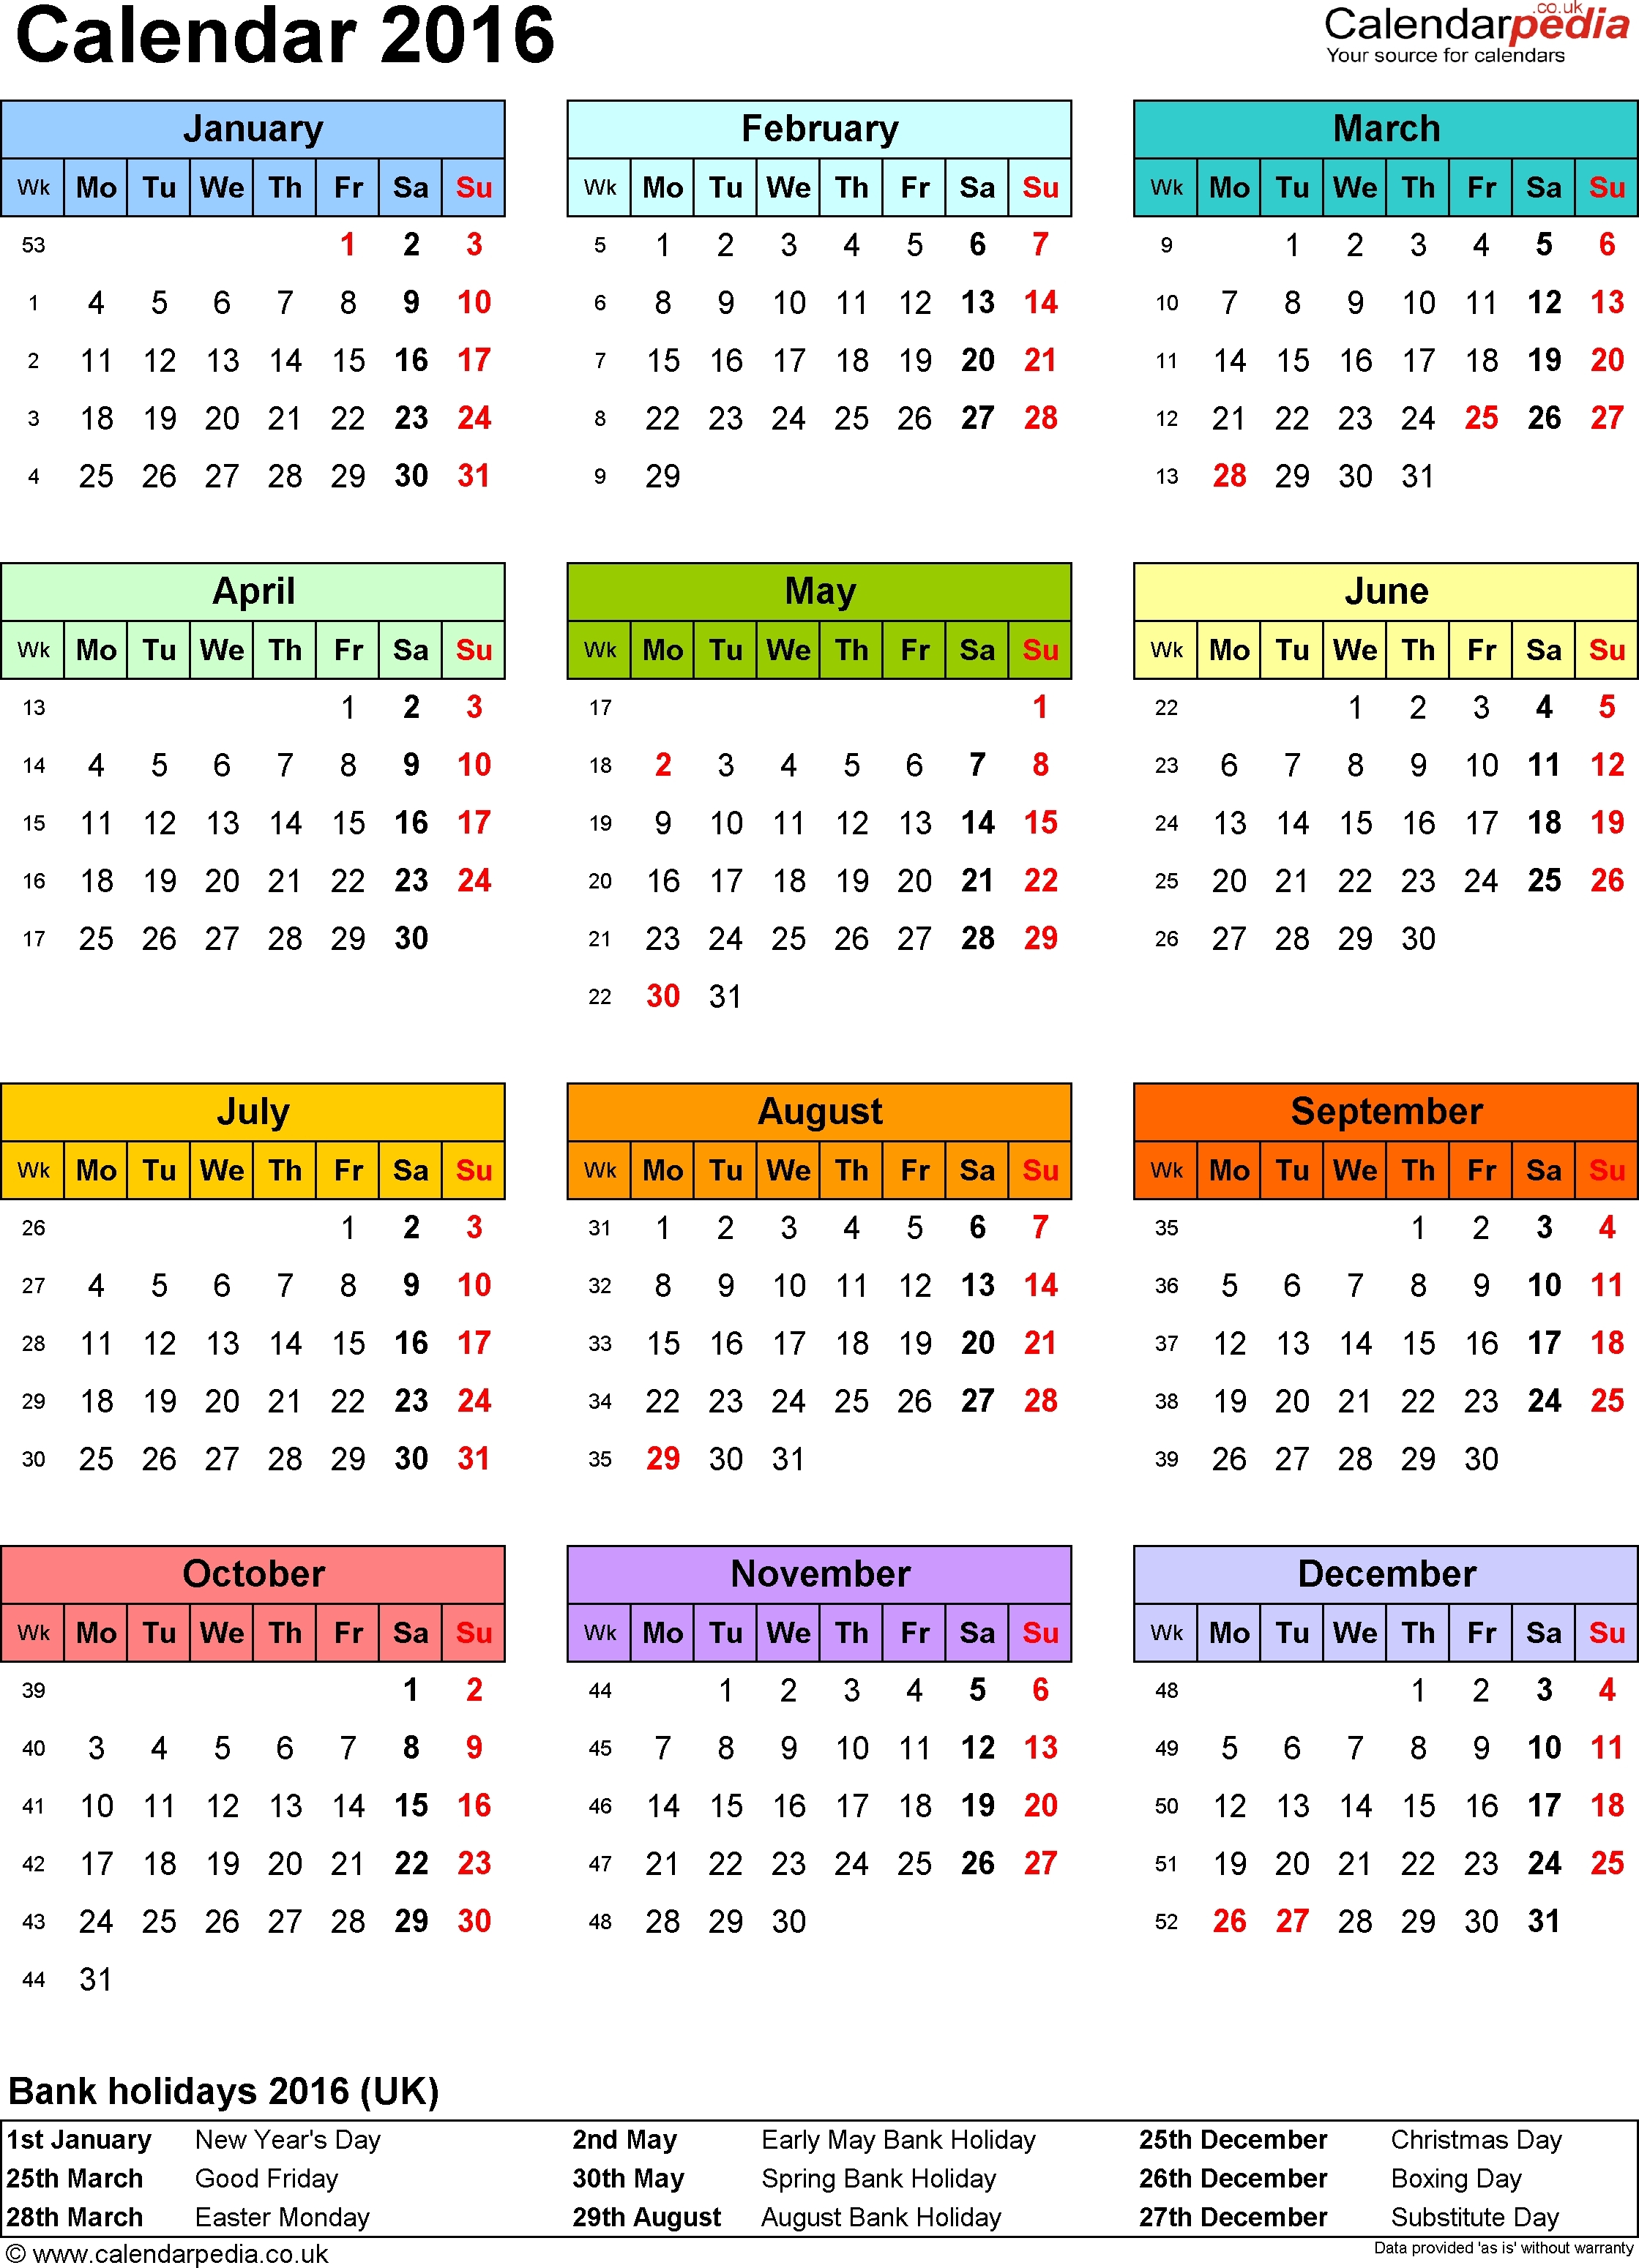 3 Year Calendar 2017 To 2019 To Print For Free | Calendar